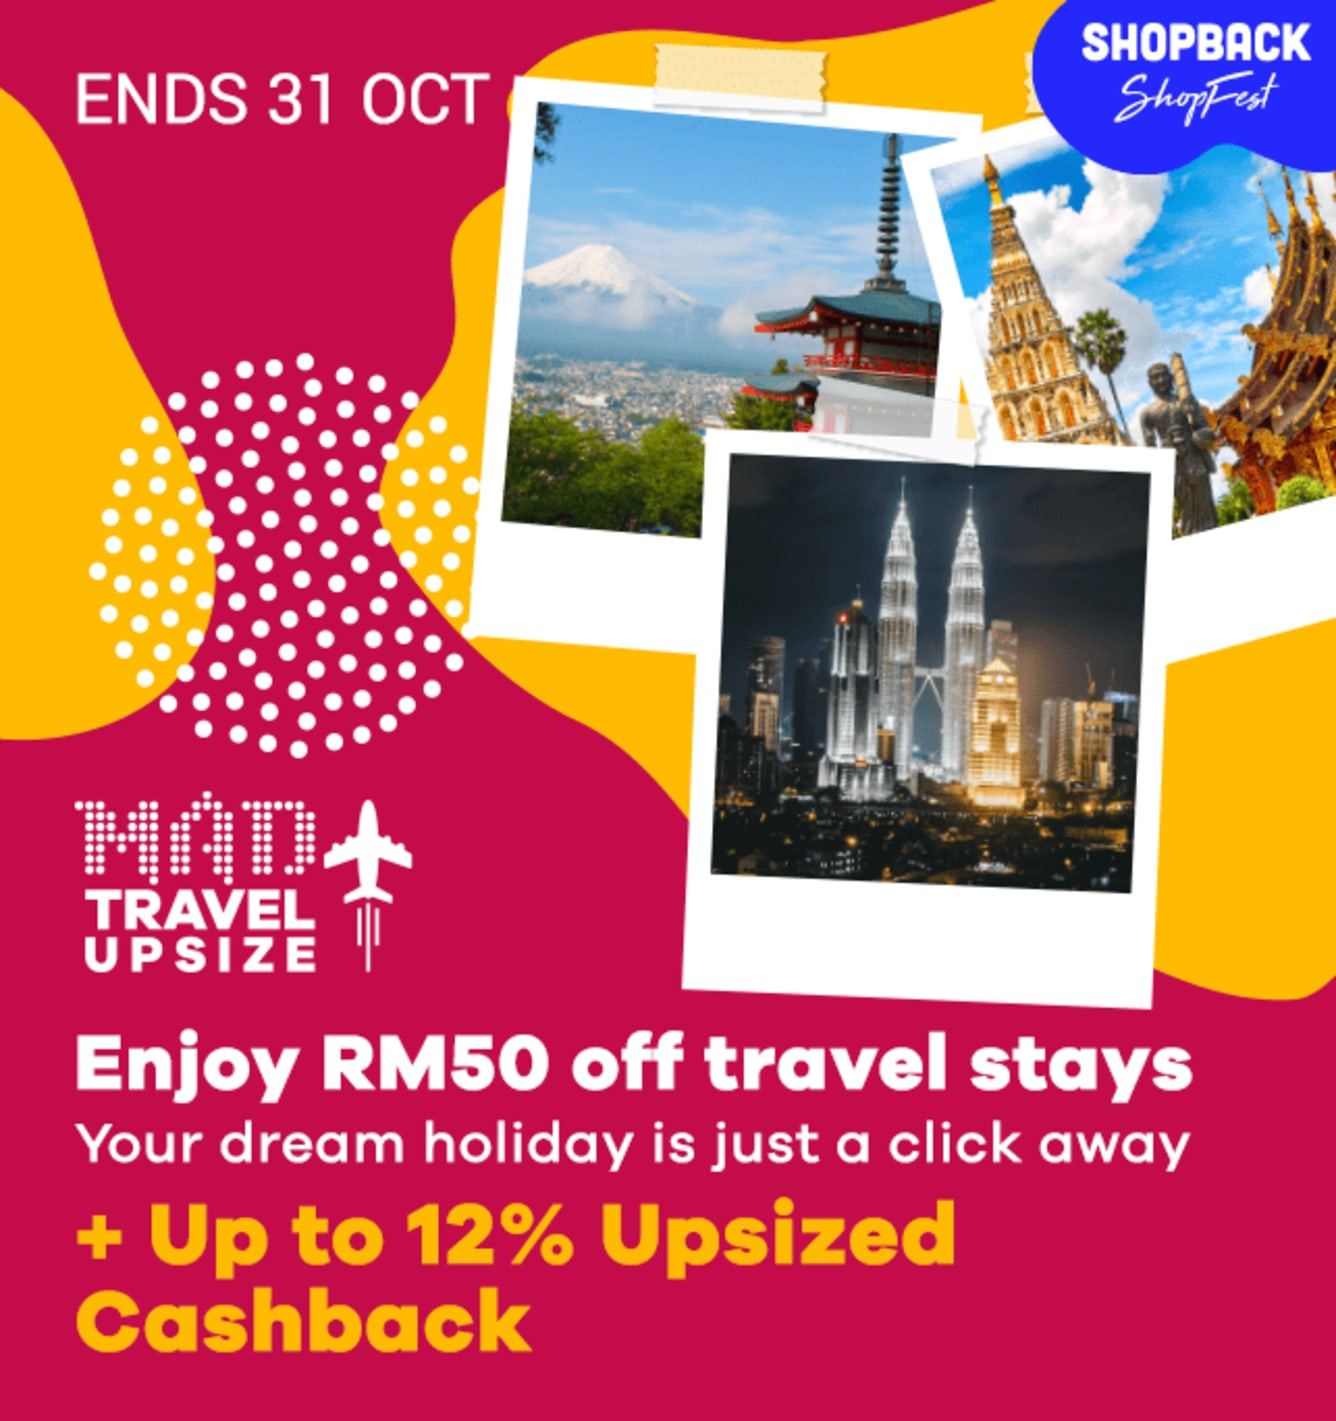 Travel Fair Up to 12% Upsized Cashback